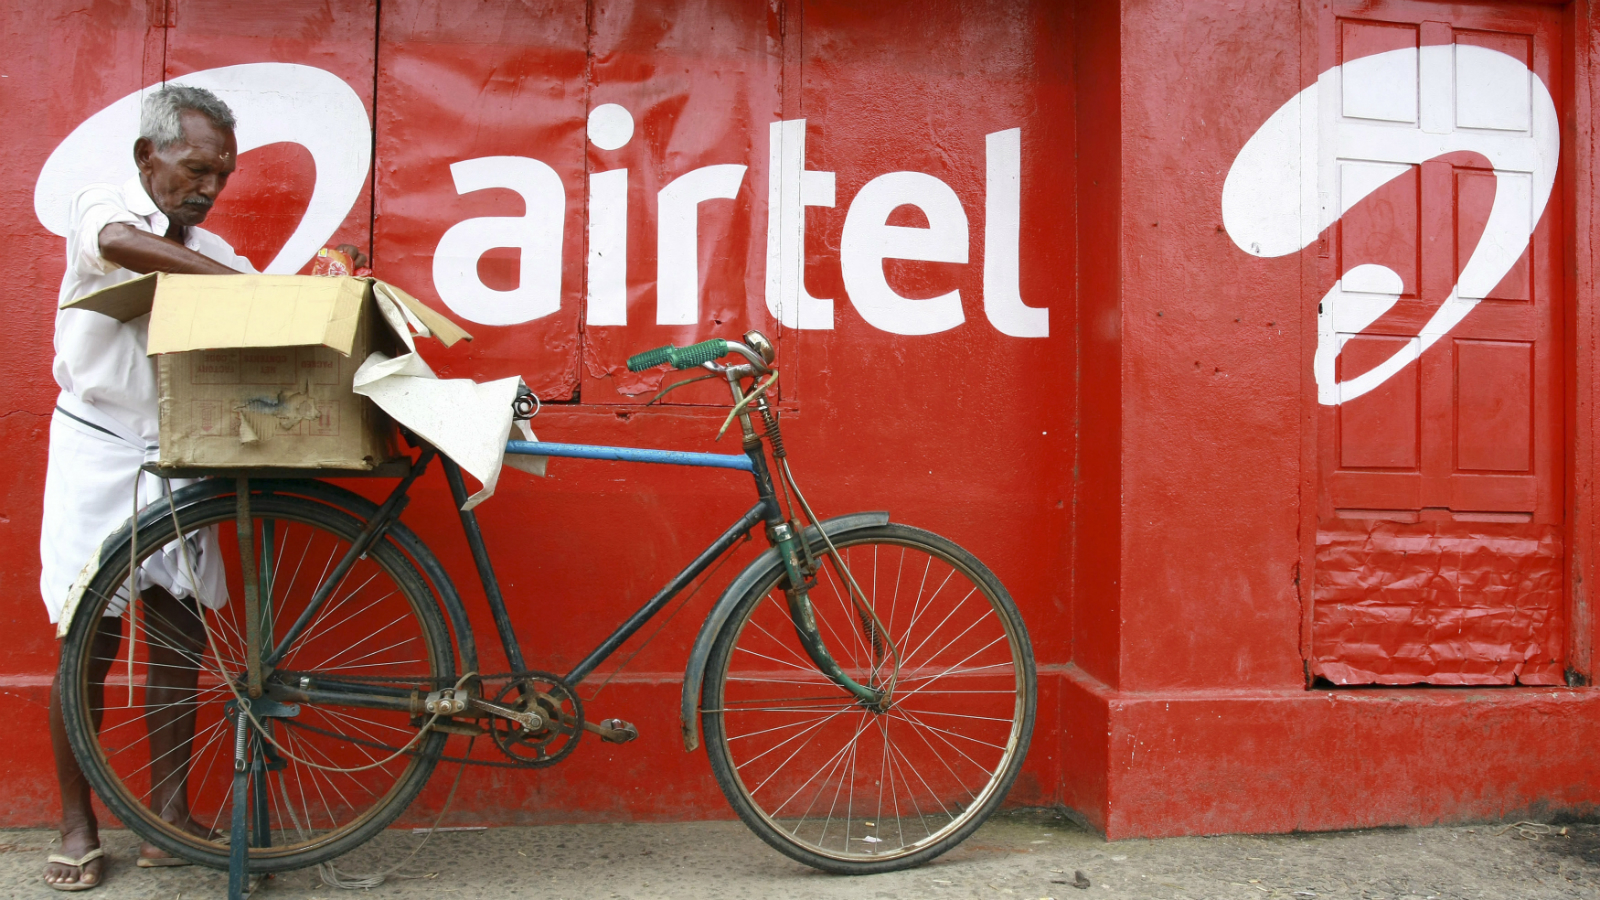 A man packs goods on the back of his bicycle as he stands next to the wall of a grocery shop painted with an advertisement for Bharti Airtel in the southern Indian city of Kochi May 5, 2011. The loss-making African operation of Bharti Airtel Ltd is expected to suppress near-term earnings of India's biggest mobile operator, which posted a bigger-than-expected 31.5 percent net profit drop in the March quarter. REUTERS/Sivaram V (INDIA - Tags: BUSINESS)